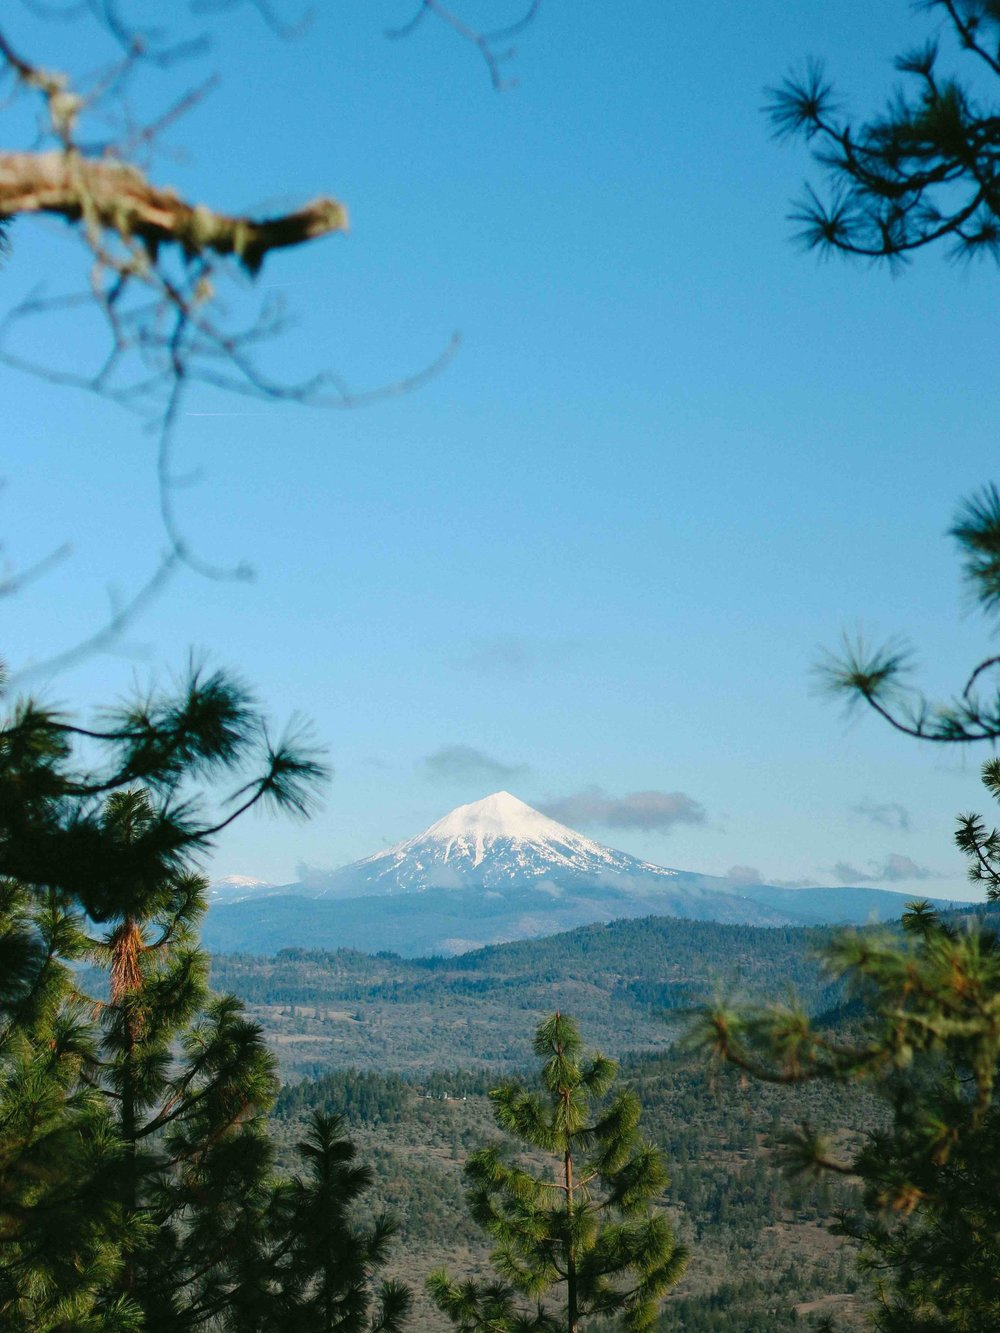 View of Mt. McLoughlin from Roxy Ann Peak